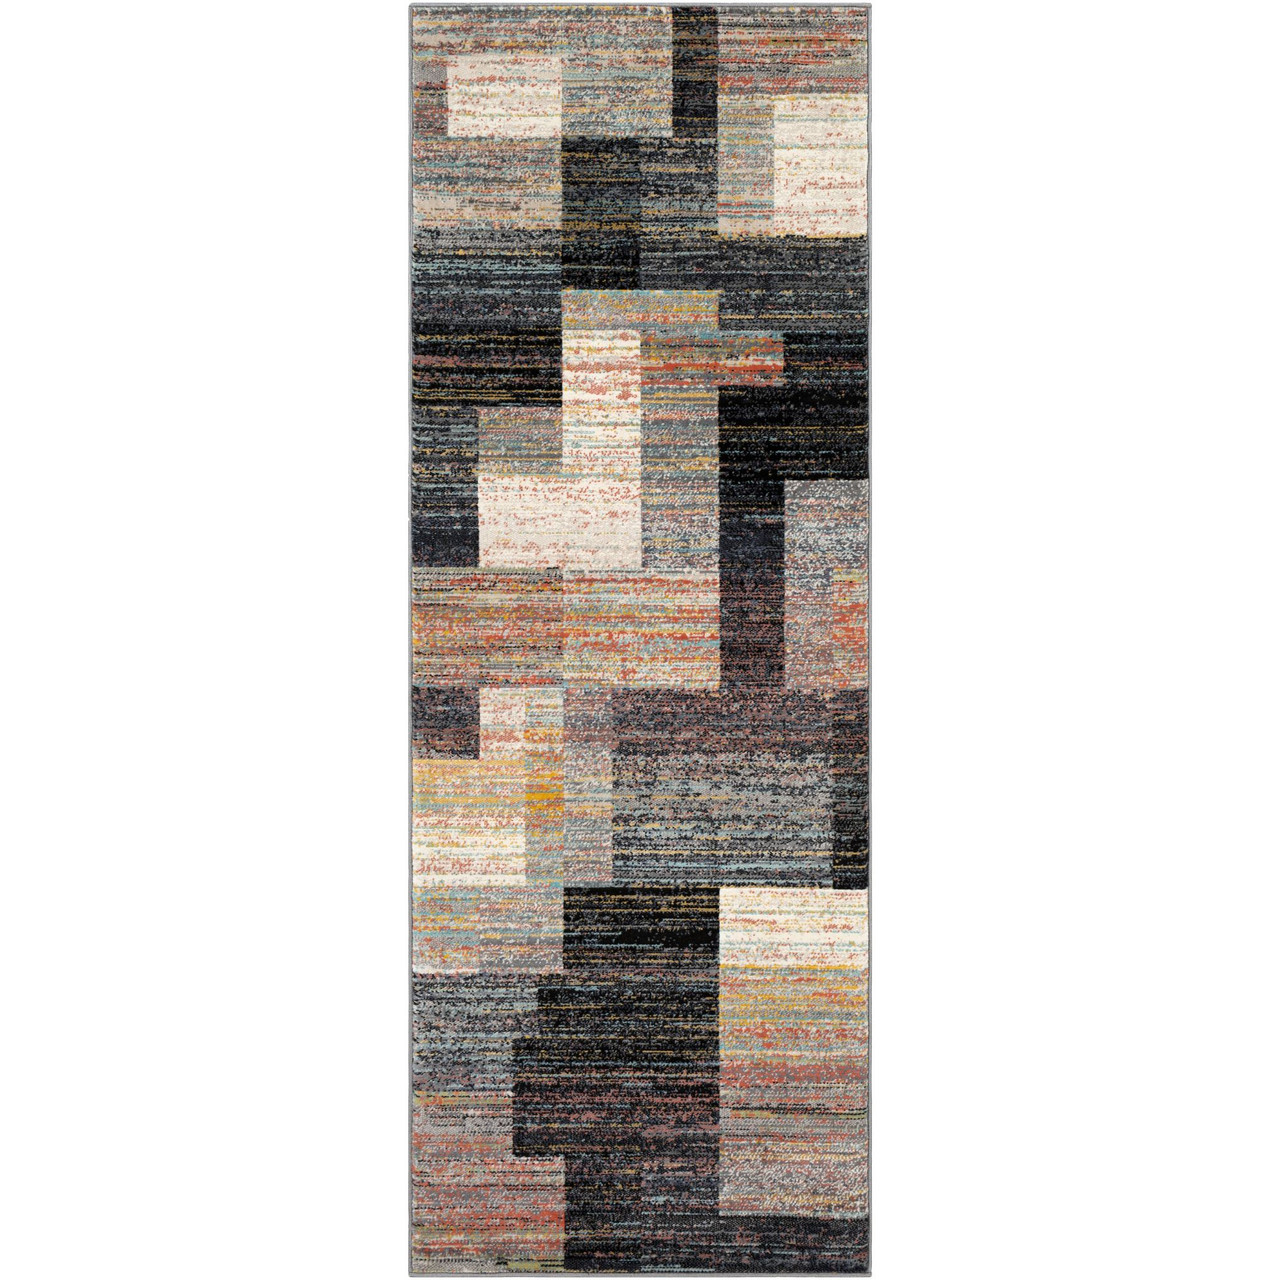 2 X 3 Black And Brown Rectangular Area Throw Rug 33421155